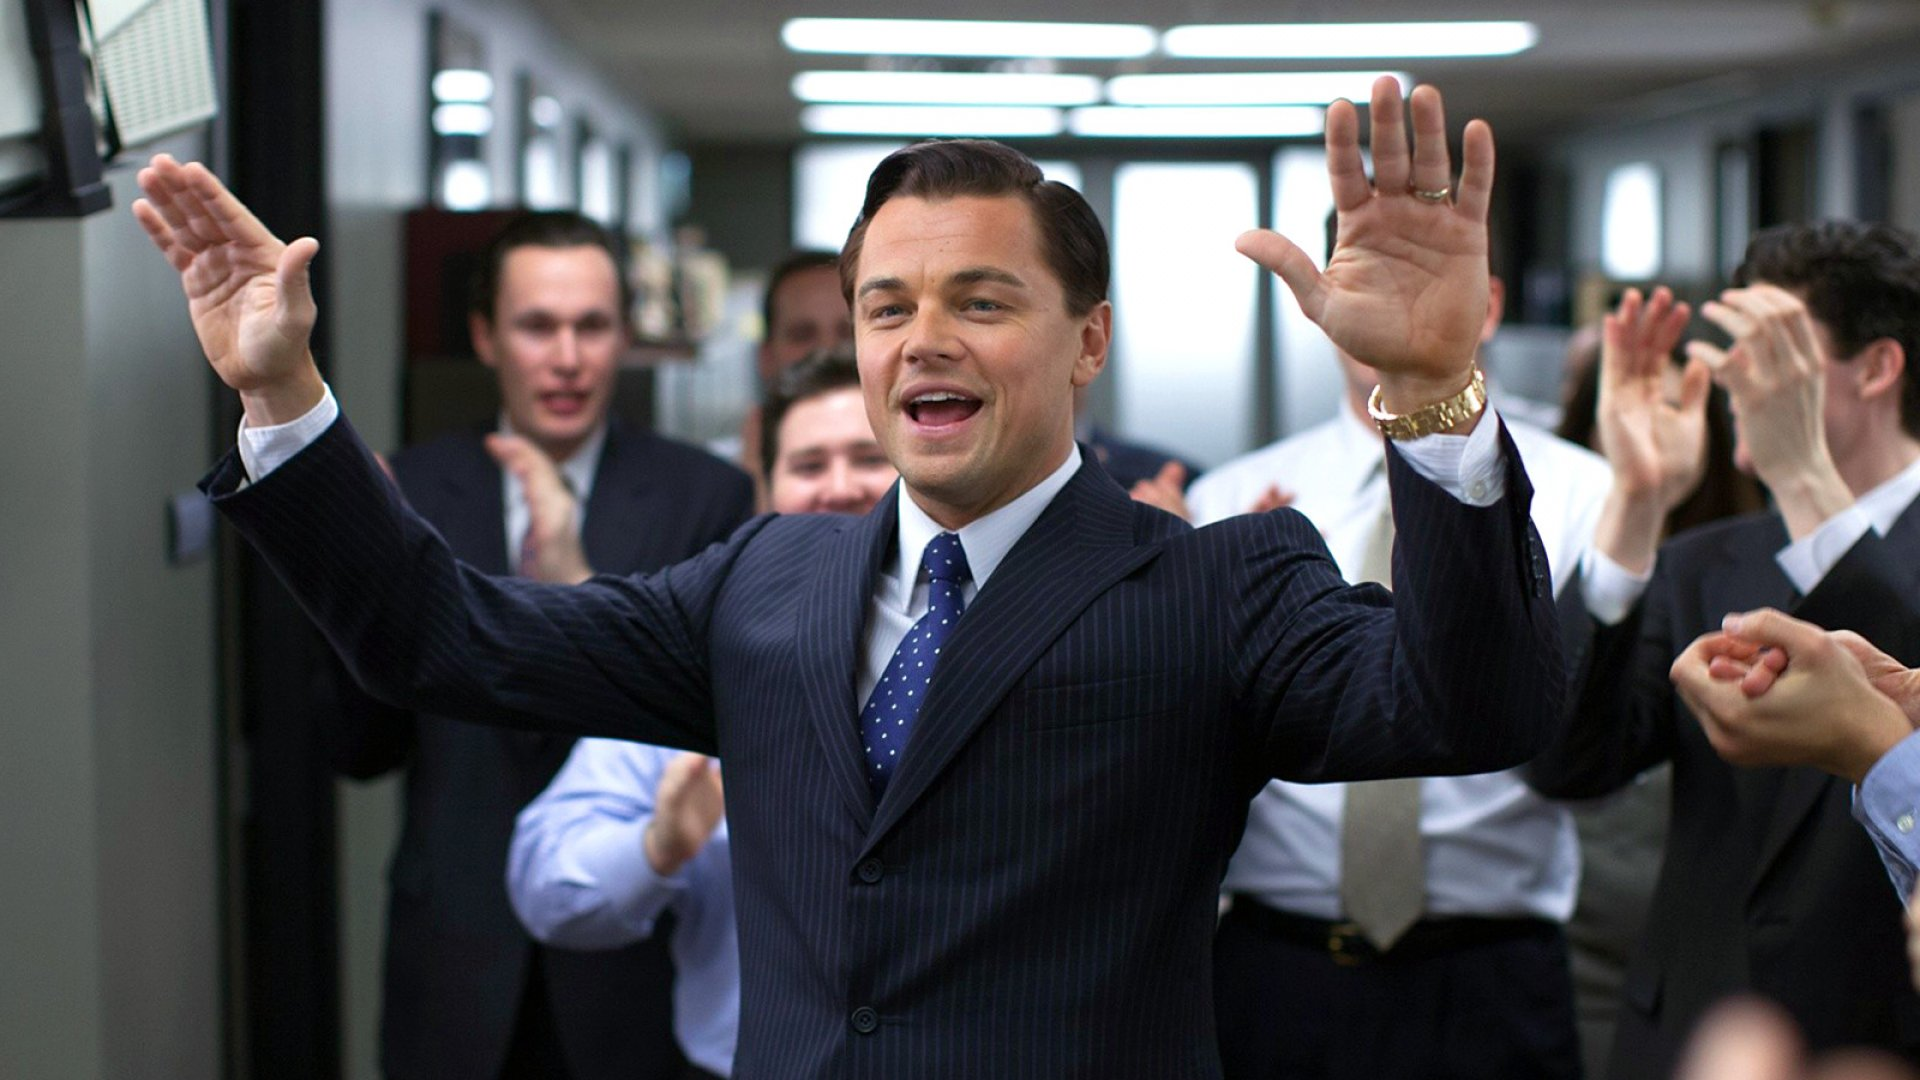 'The Wolf of Wall Street' Teaches These 7 Lessons for Success